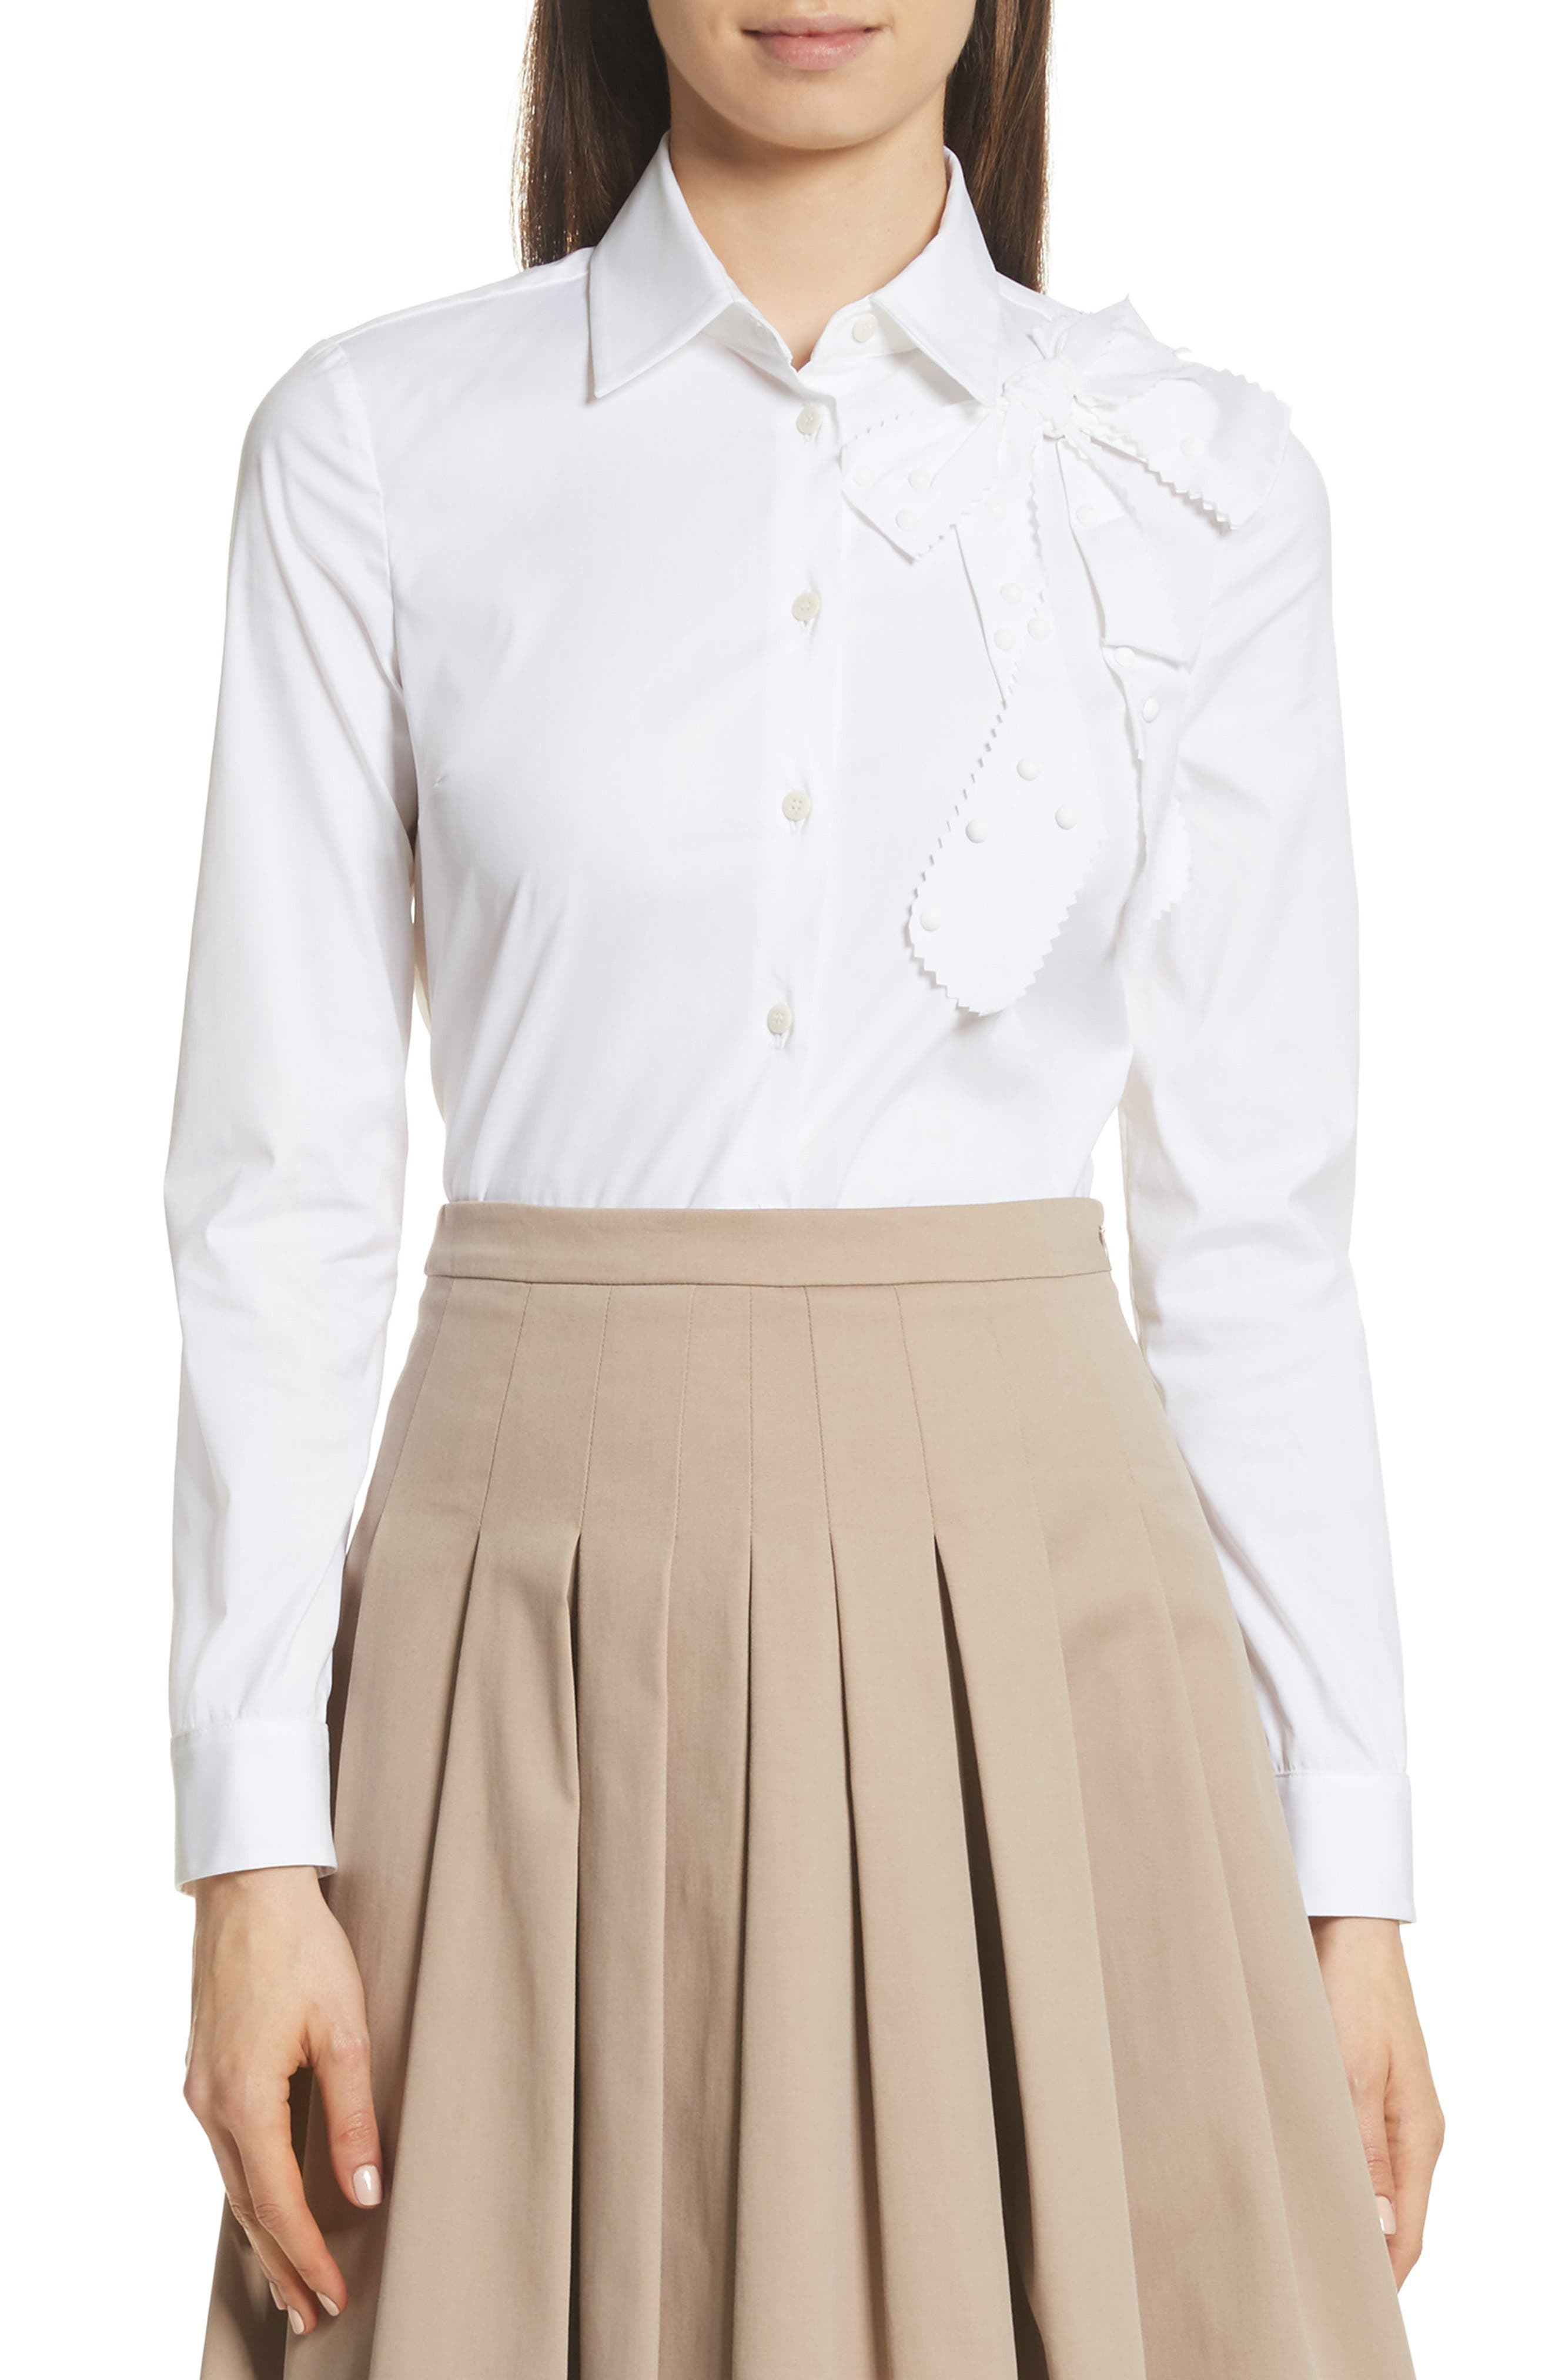 RED Valentino Bow Detail Shirt